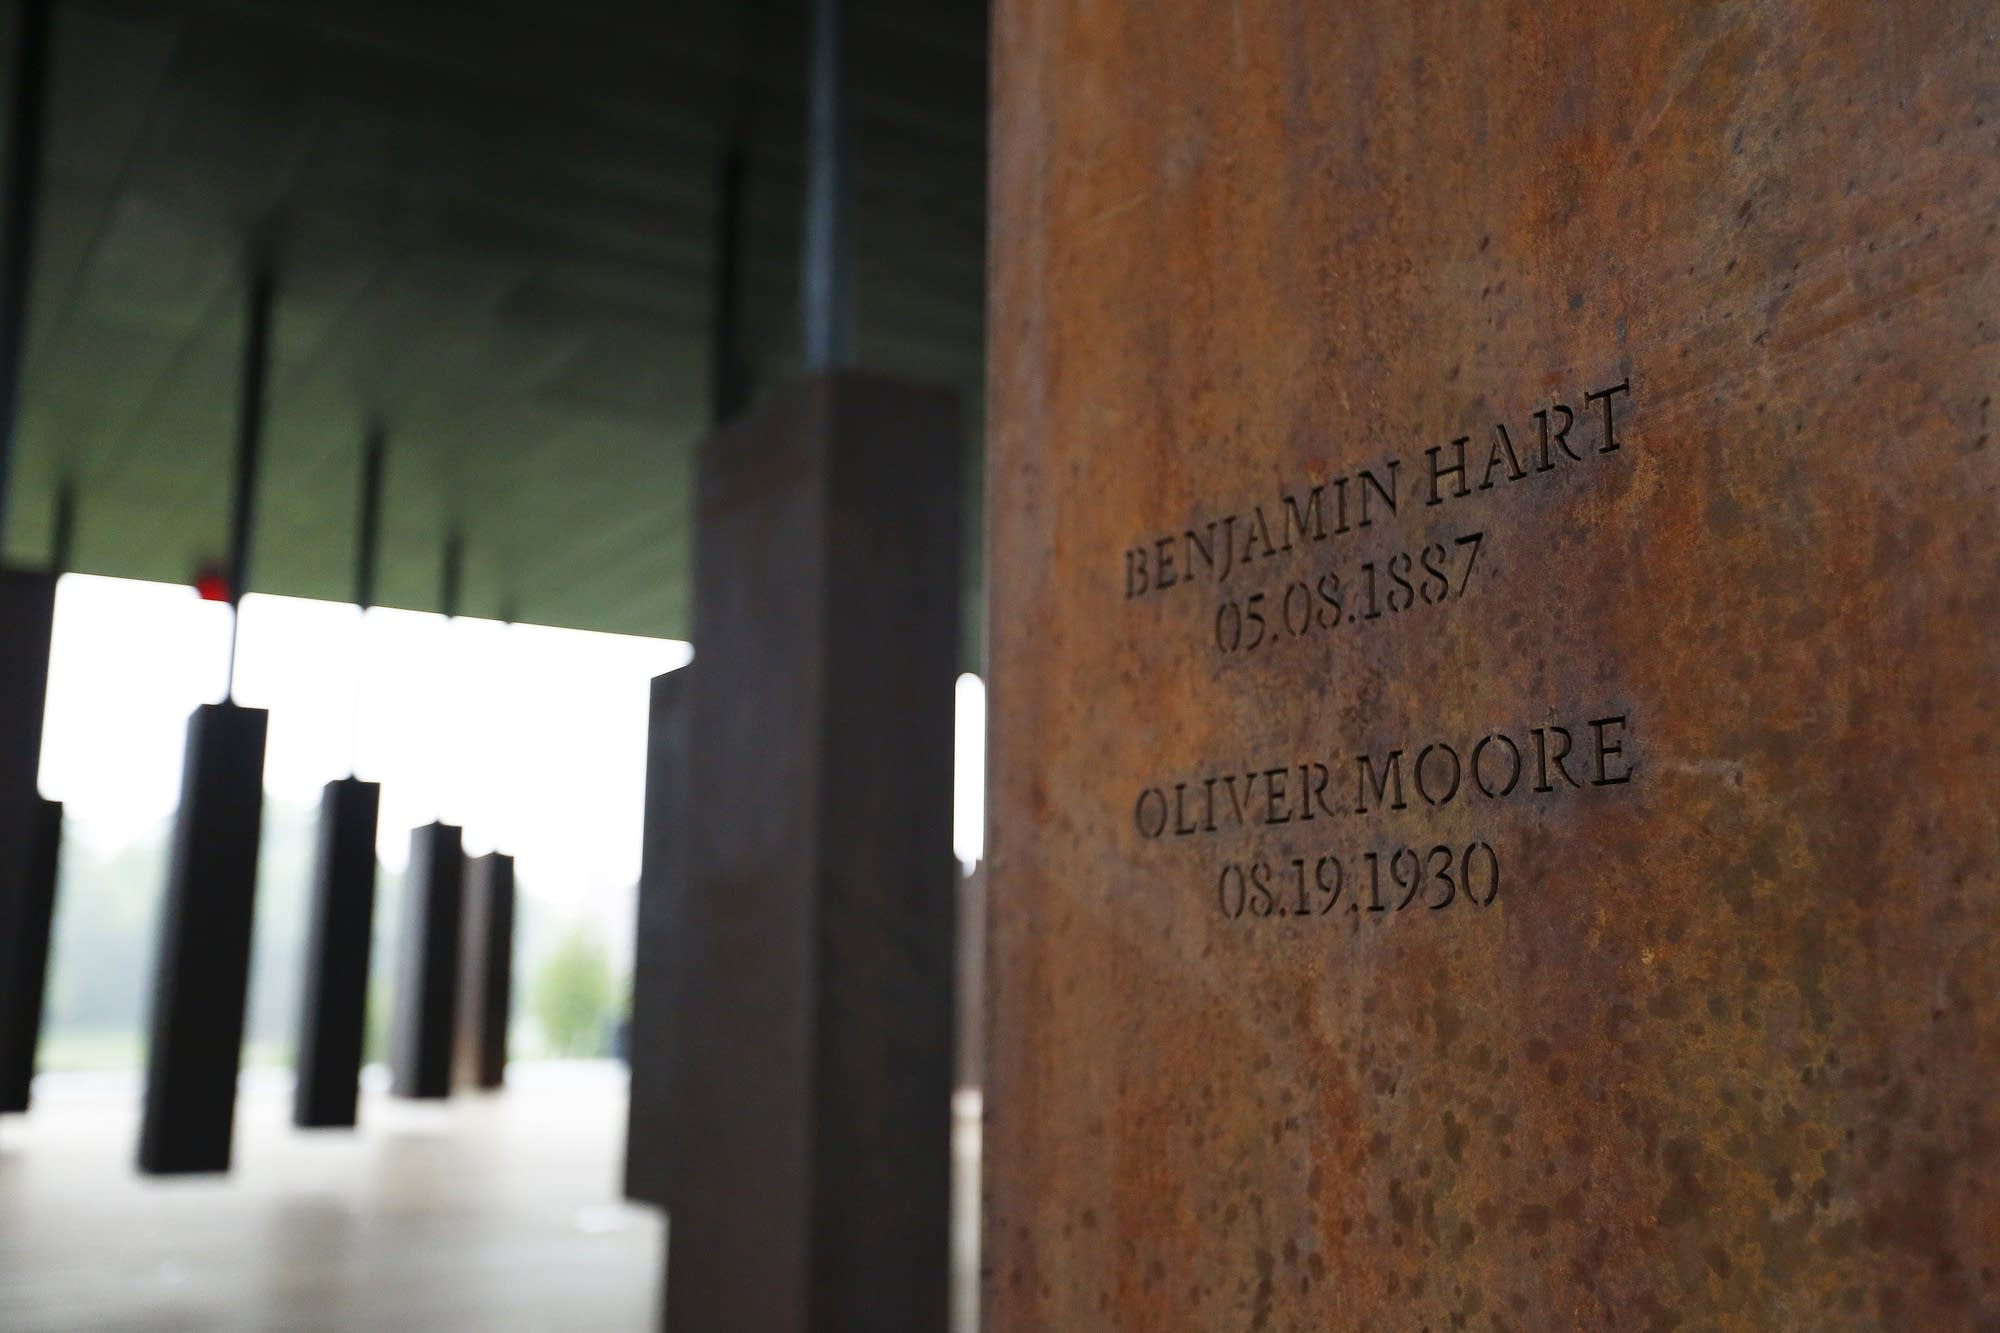 Names of lynching victims are carved in metal at the National Memorial.